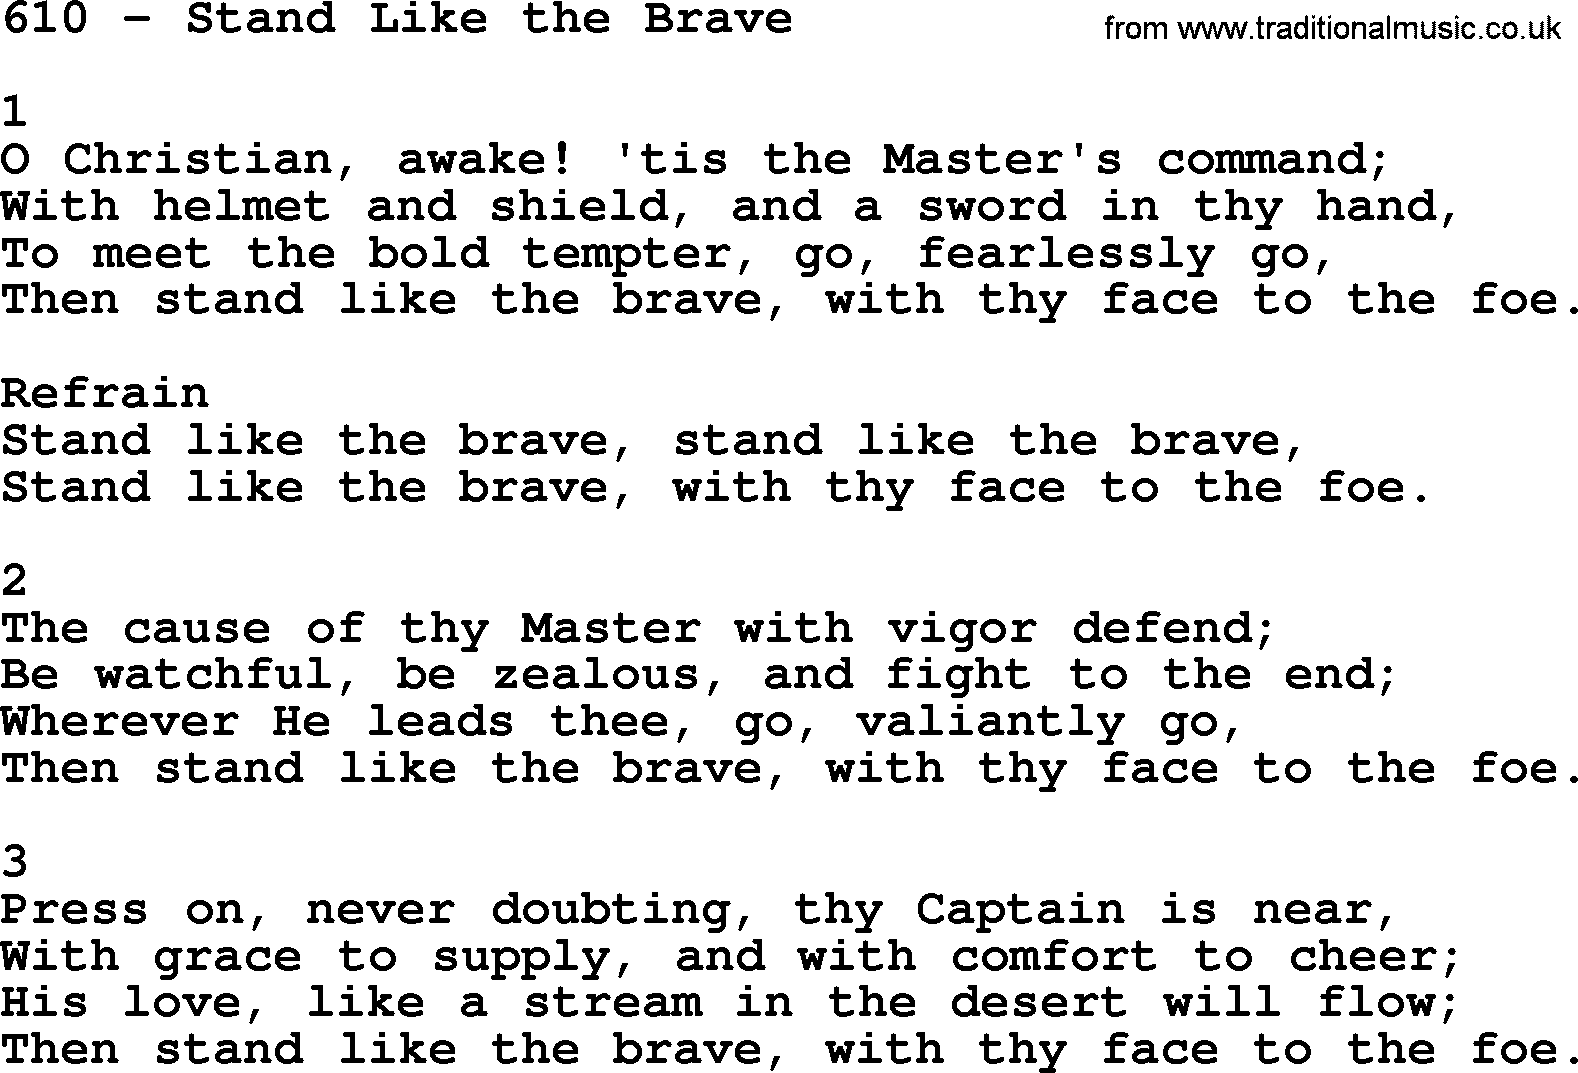 Adventist Hymnal, Song: 610-Stand Like The Brave, with Lyrics, PPT